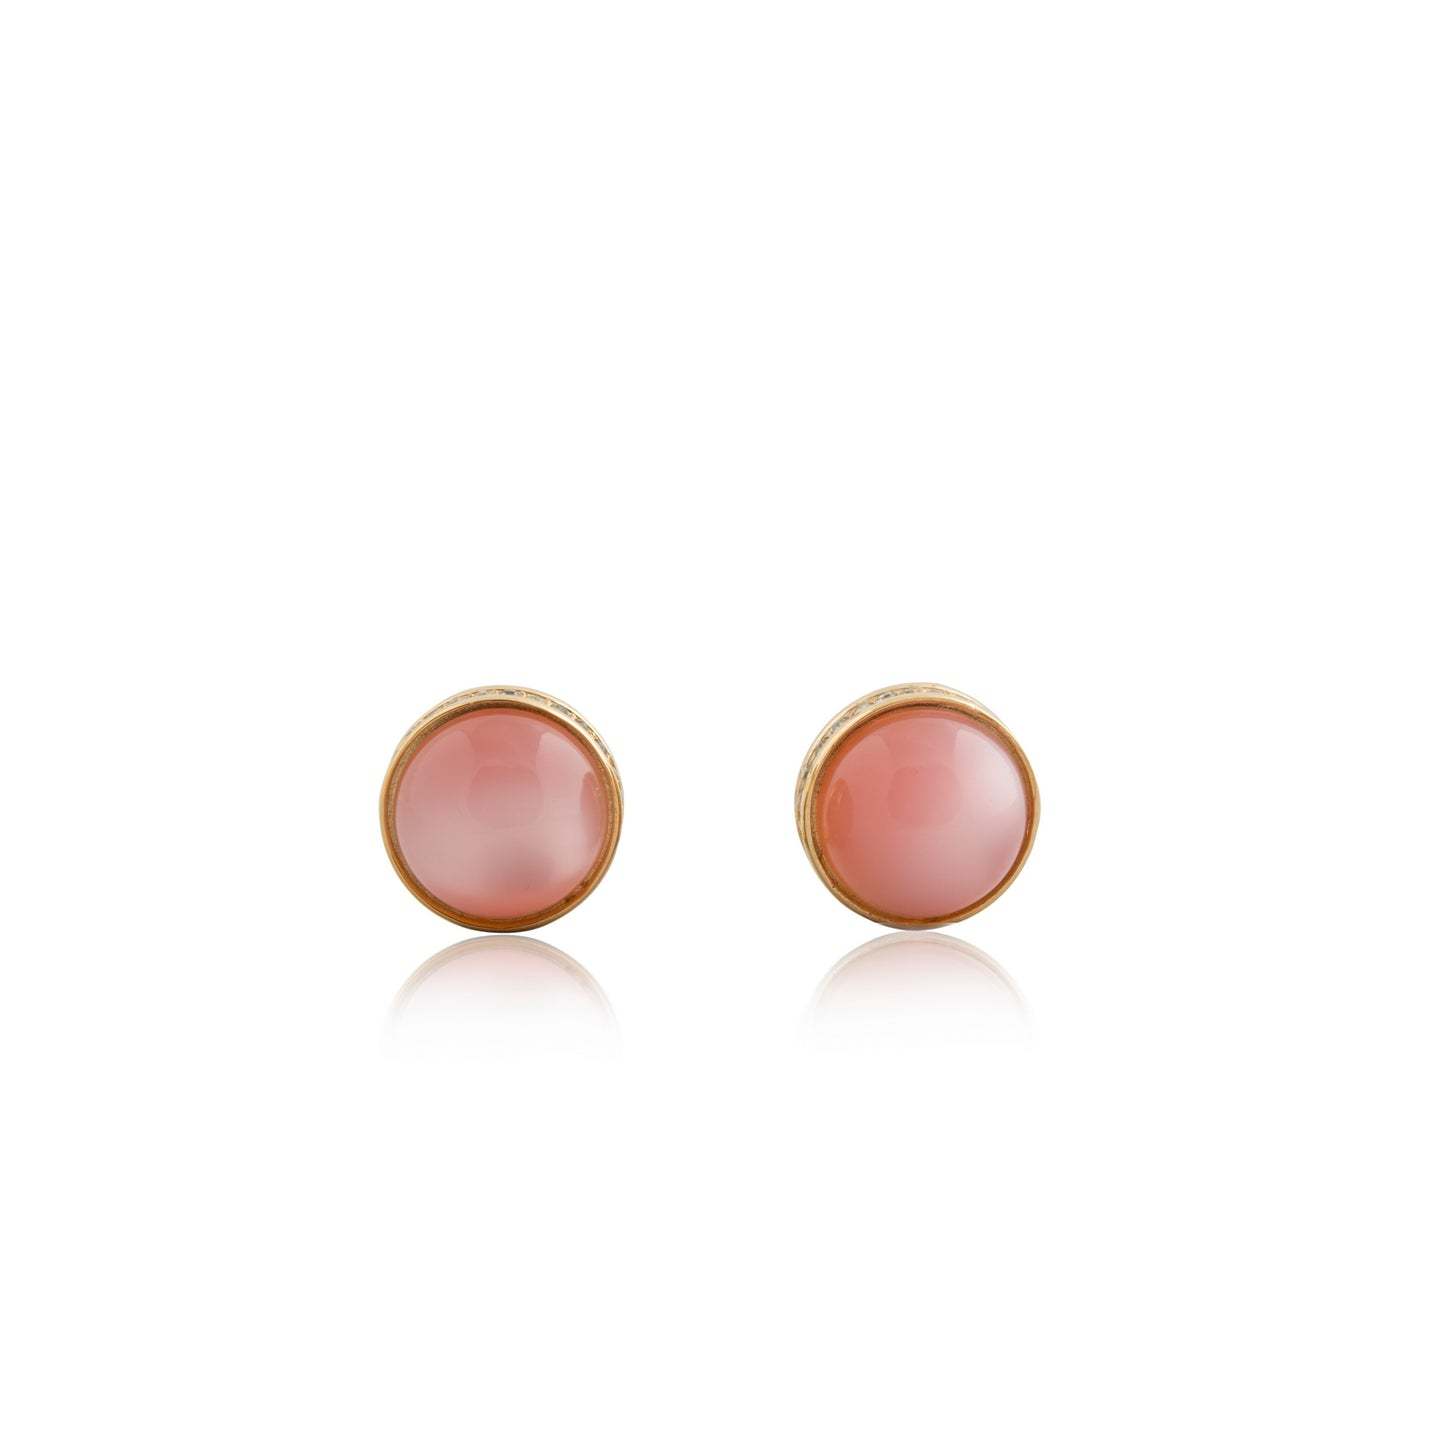 Vintage Givenchy Pink with Diamond Earrings